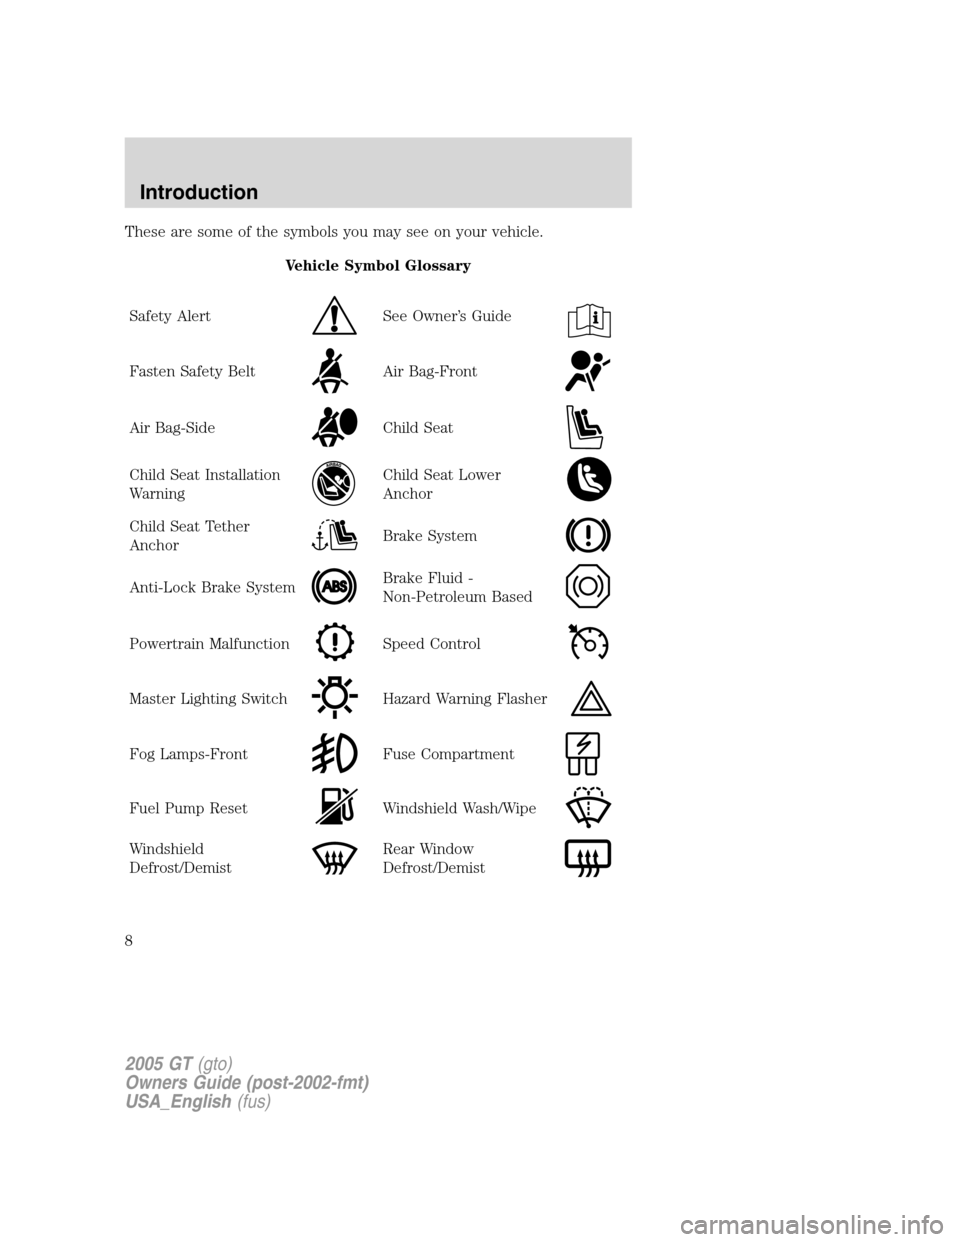 FORD GT 2005 1.G Owners Manual  These are some of the symbols you may see on your vehicle.Vehicle Symbol Glossary Safety Alert See Owner 's Guide Fasten Safety BeltAir Bag-Front Air Bag-SideChild Seat Child Seat Installation Warn